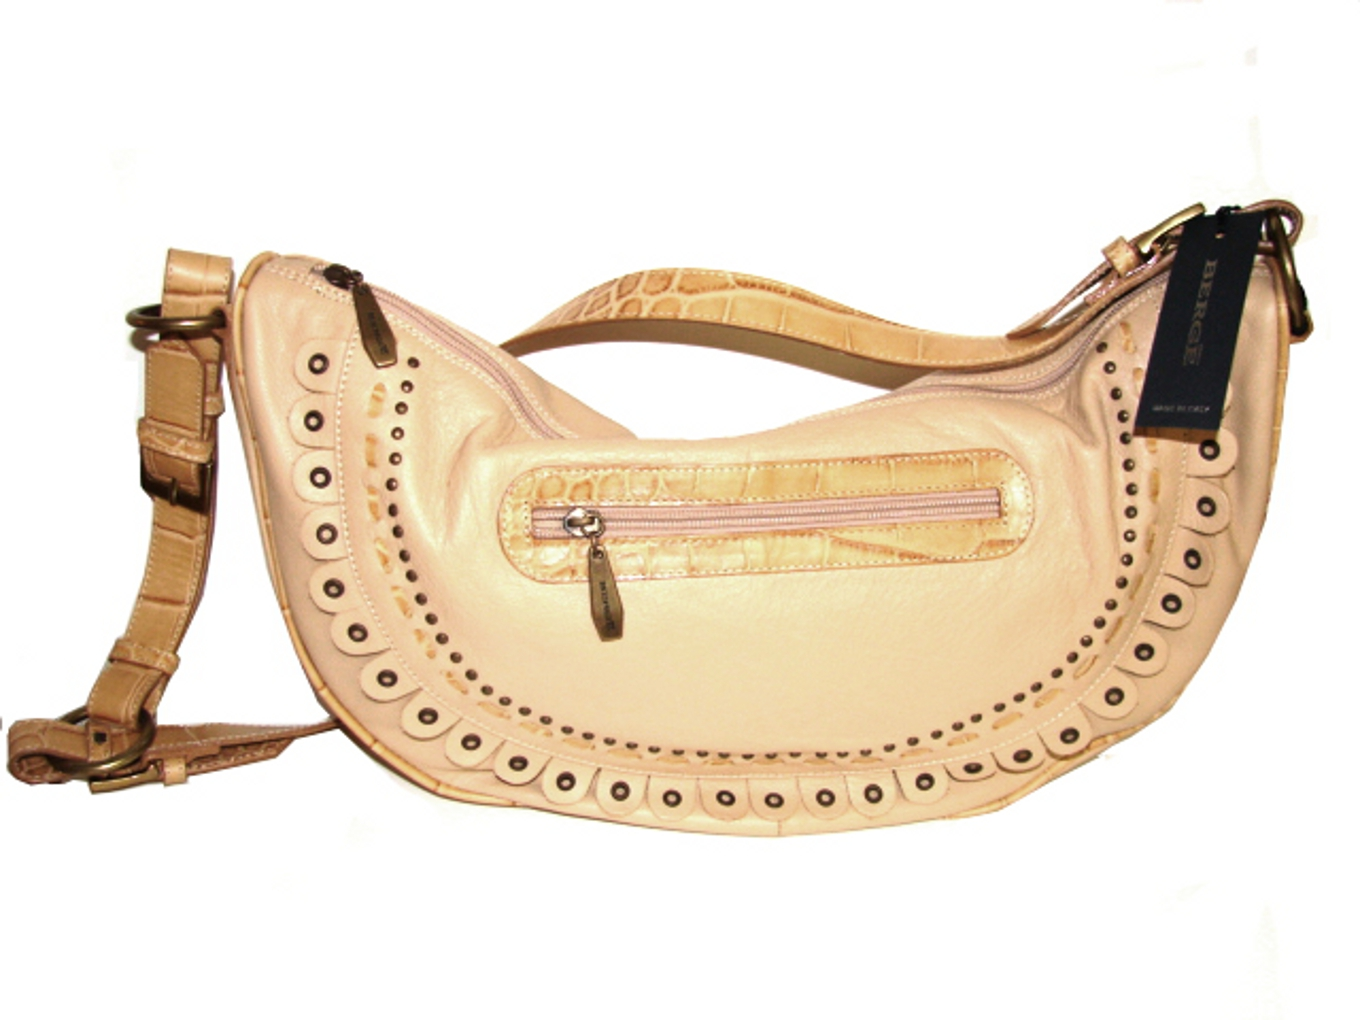 Berge-Italian Designer Handbag in Natural Tan Color Leather!